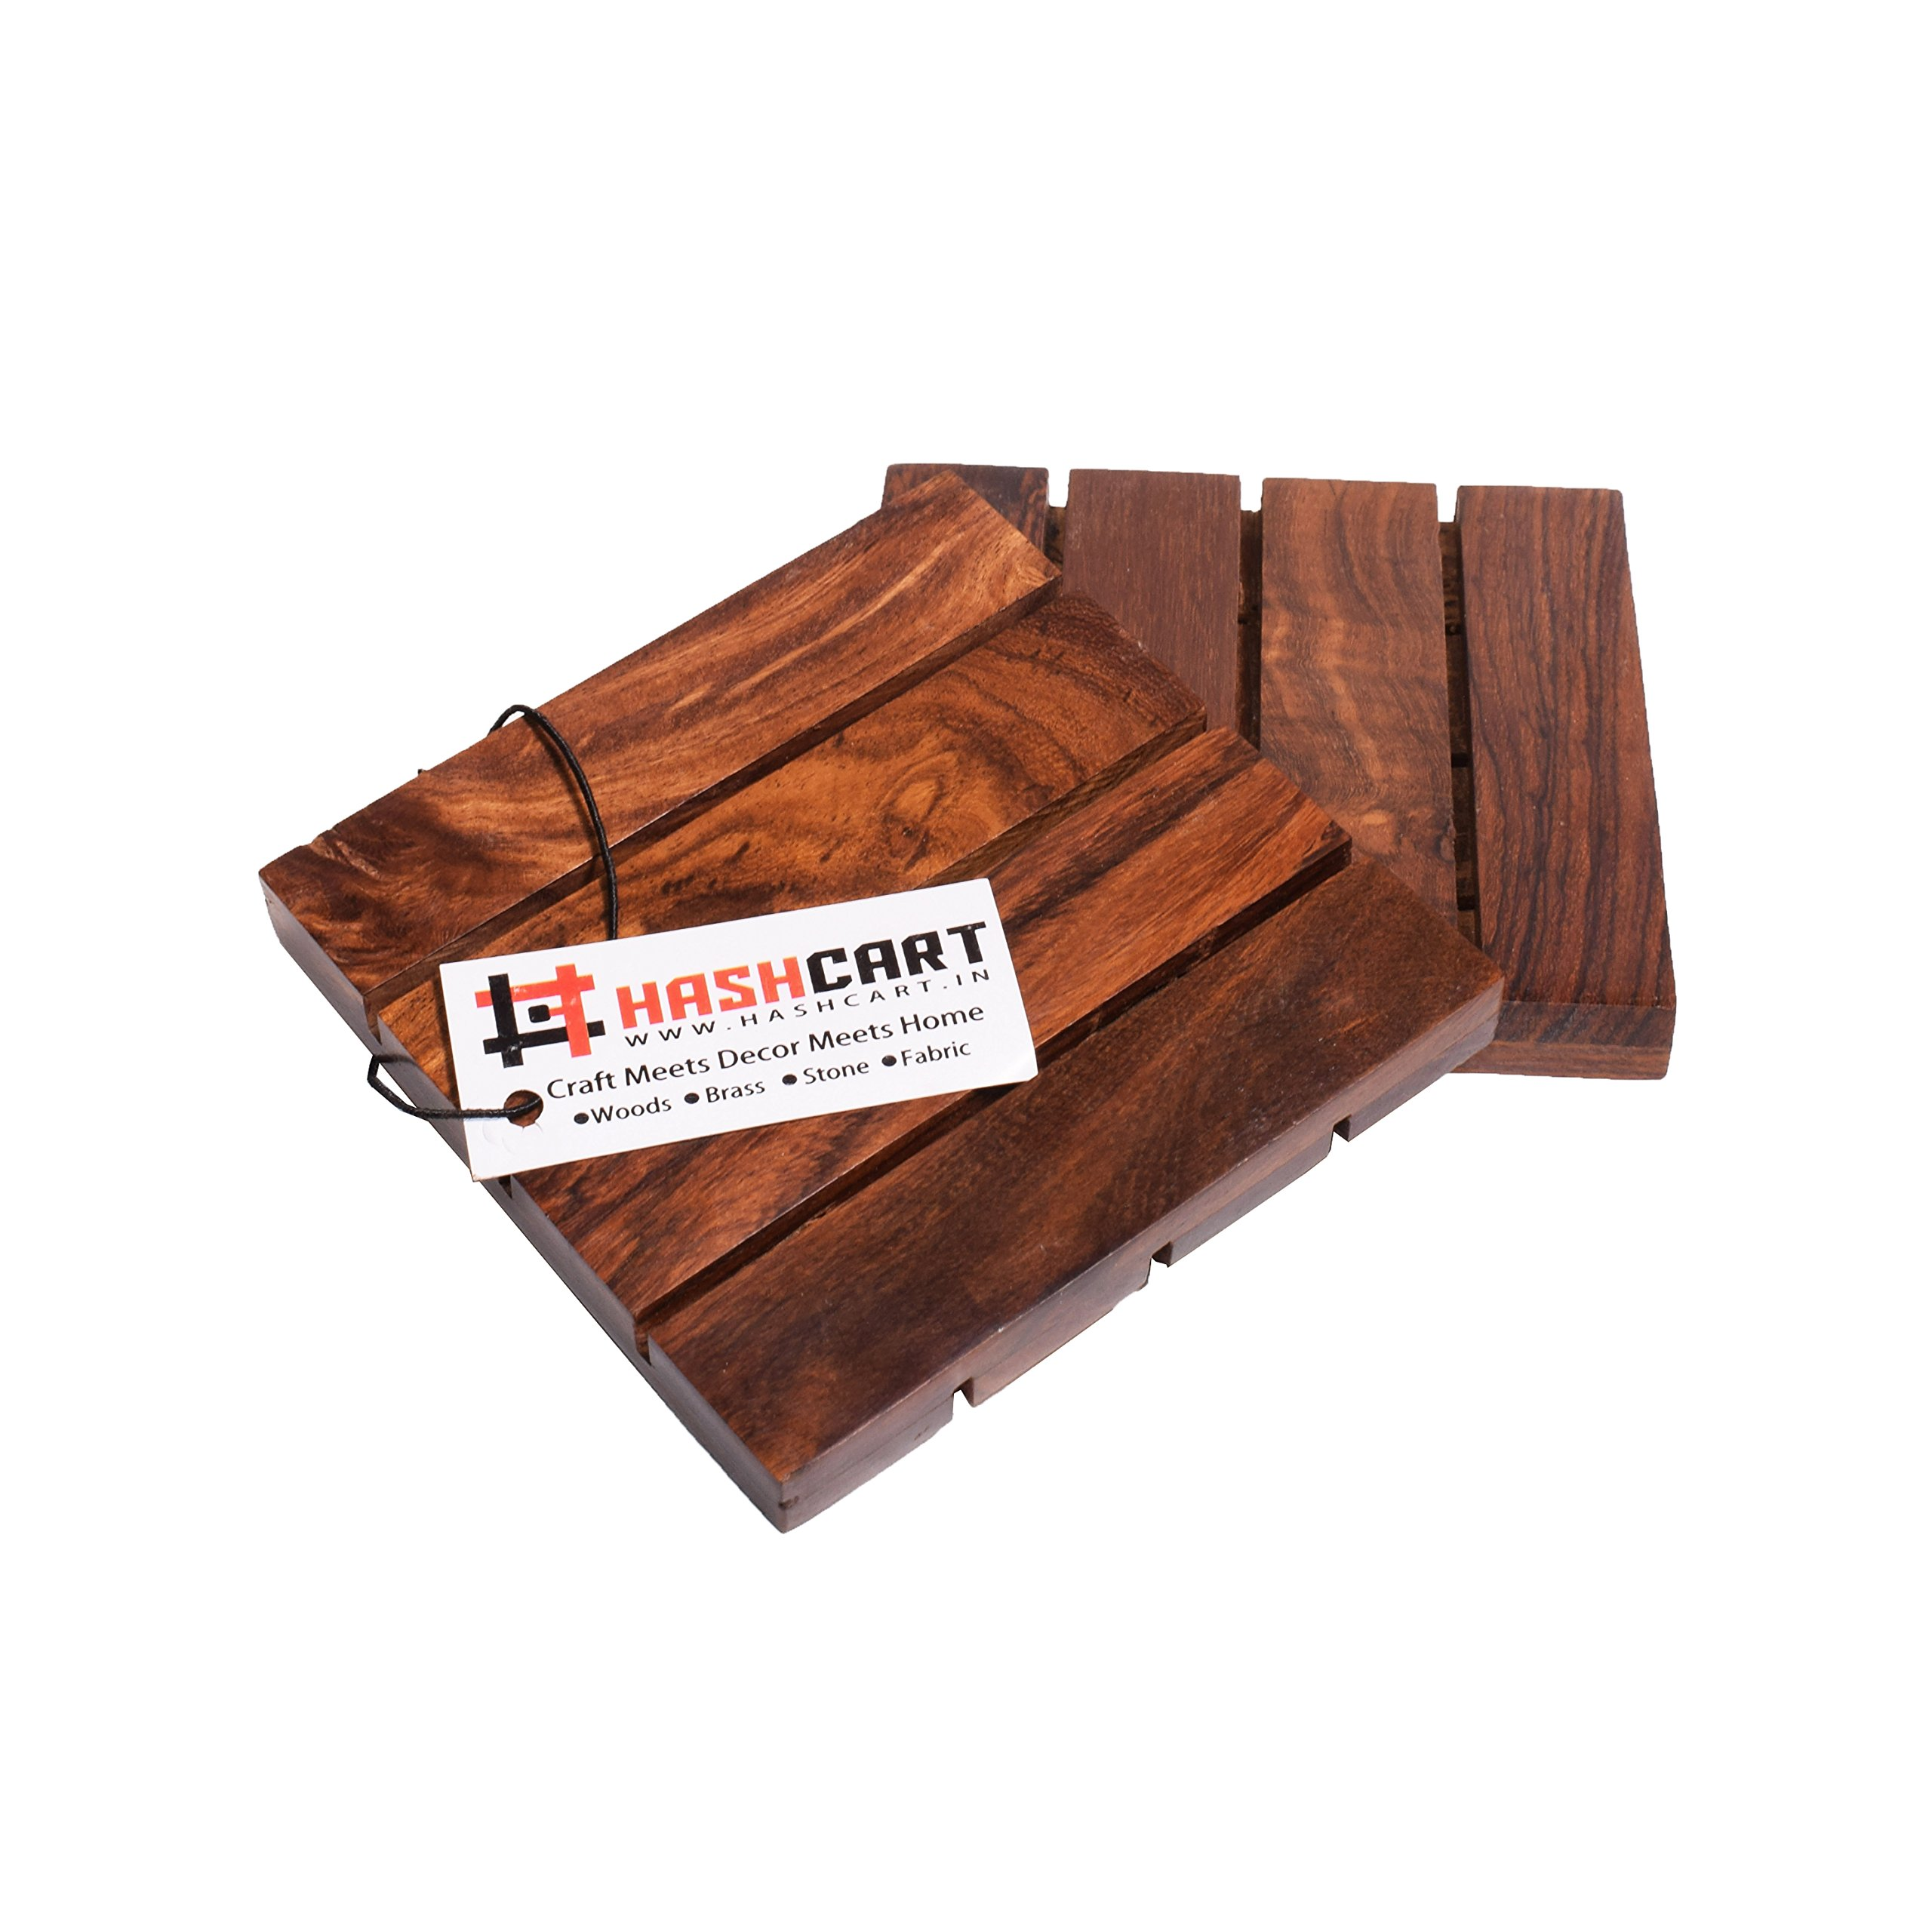 Hashcart Coasters for Drinks-Hot & Cold/Wooden Coaster Sets/Dining, Tea & Coffee Table Decorative Cocktail Coasters in Sheesham Wood | 4x4 inch | Set of 2 by Hashcart (Image #4)